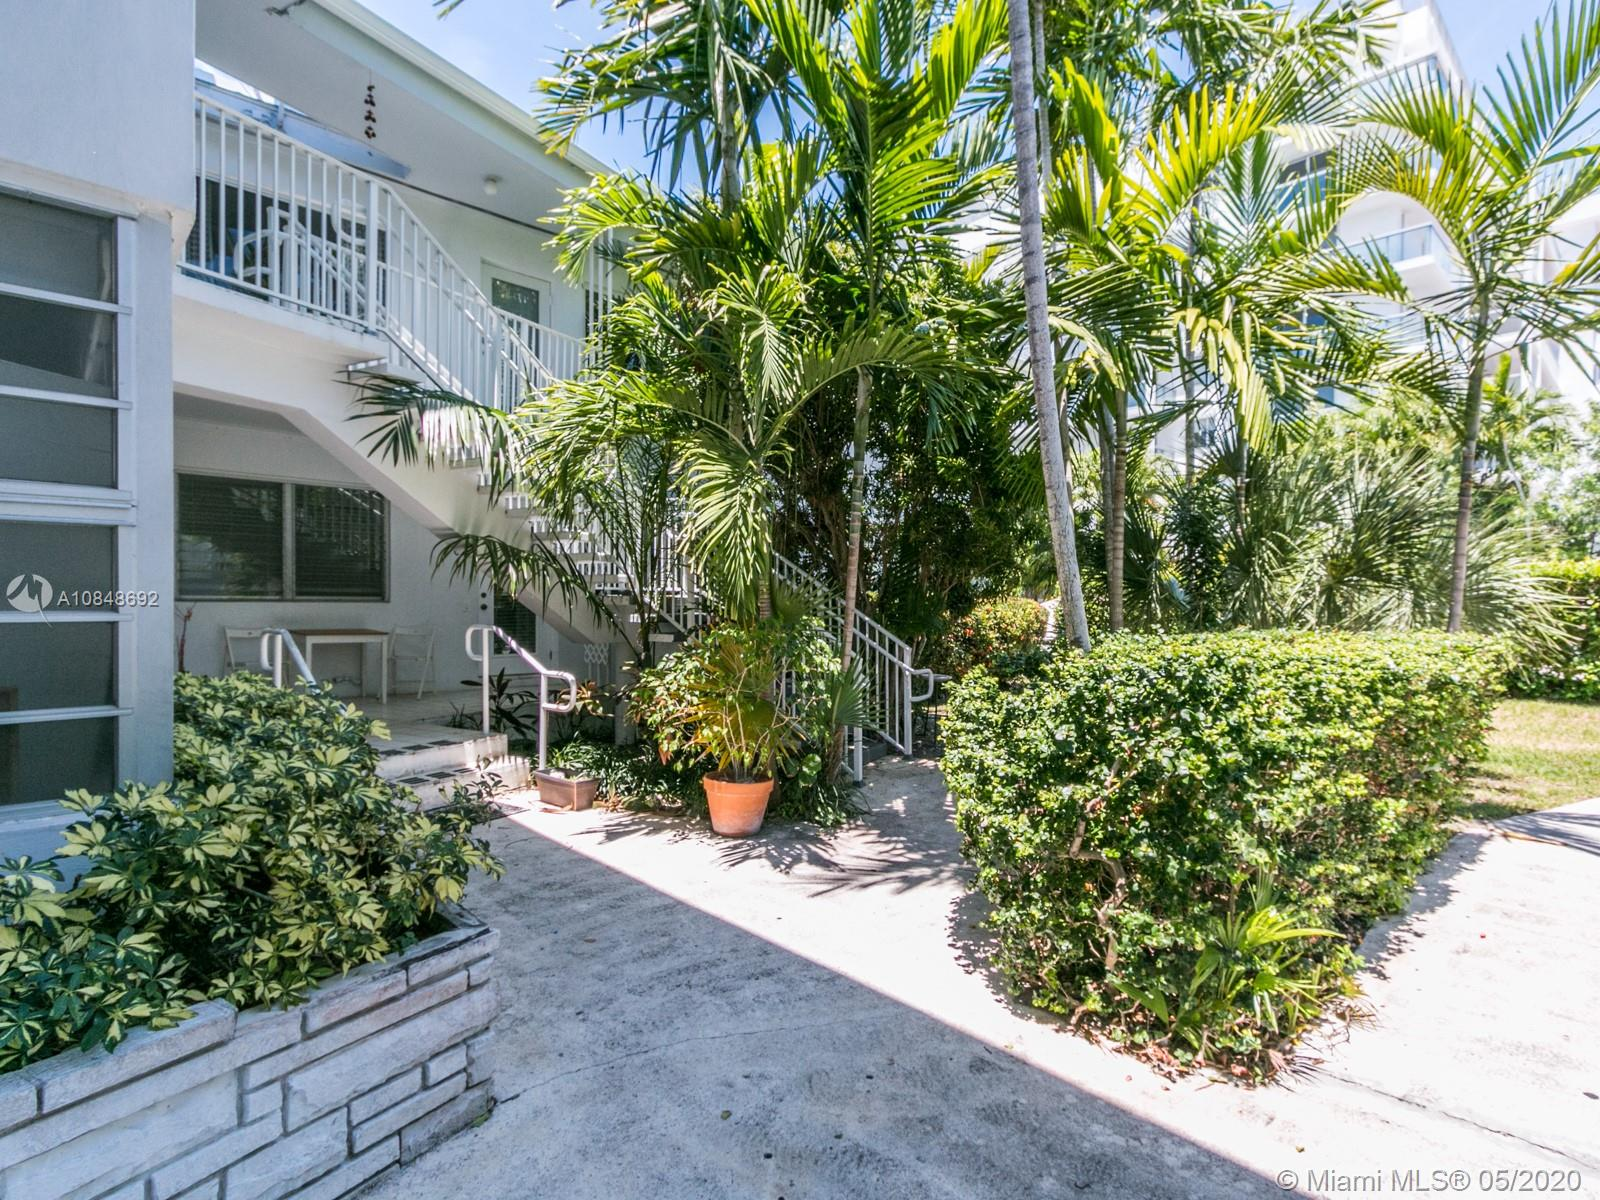 Like living in house.  Renovated and very spacious corner 3/2 in quiet neighborhood of Bay Harbor Islands. Fenced yard, Lap Pool, huge backyard and BBQ area right outside your door. Plenty of natural lighting and substantially remodeled with brand new kitchen and bathrooms, wood floors and new central A/C.  Renting ok first year of ownership.  Located in the heart of Bay Harbor Islands just around the corner from the beach, Bal Harbor Shops,  houses of worship, amazing restaurants and Located in an A rated school district! ***Easy to show and sell**.